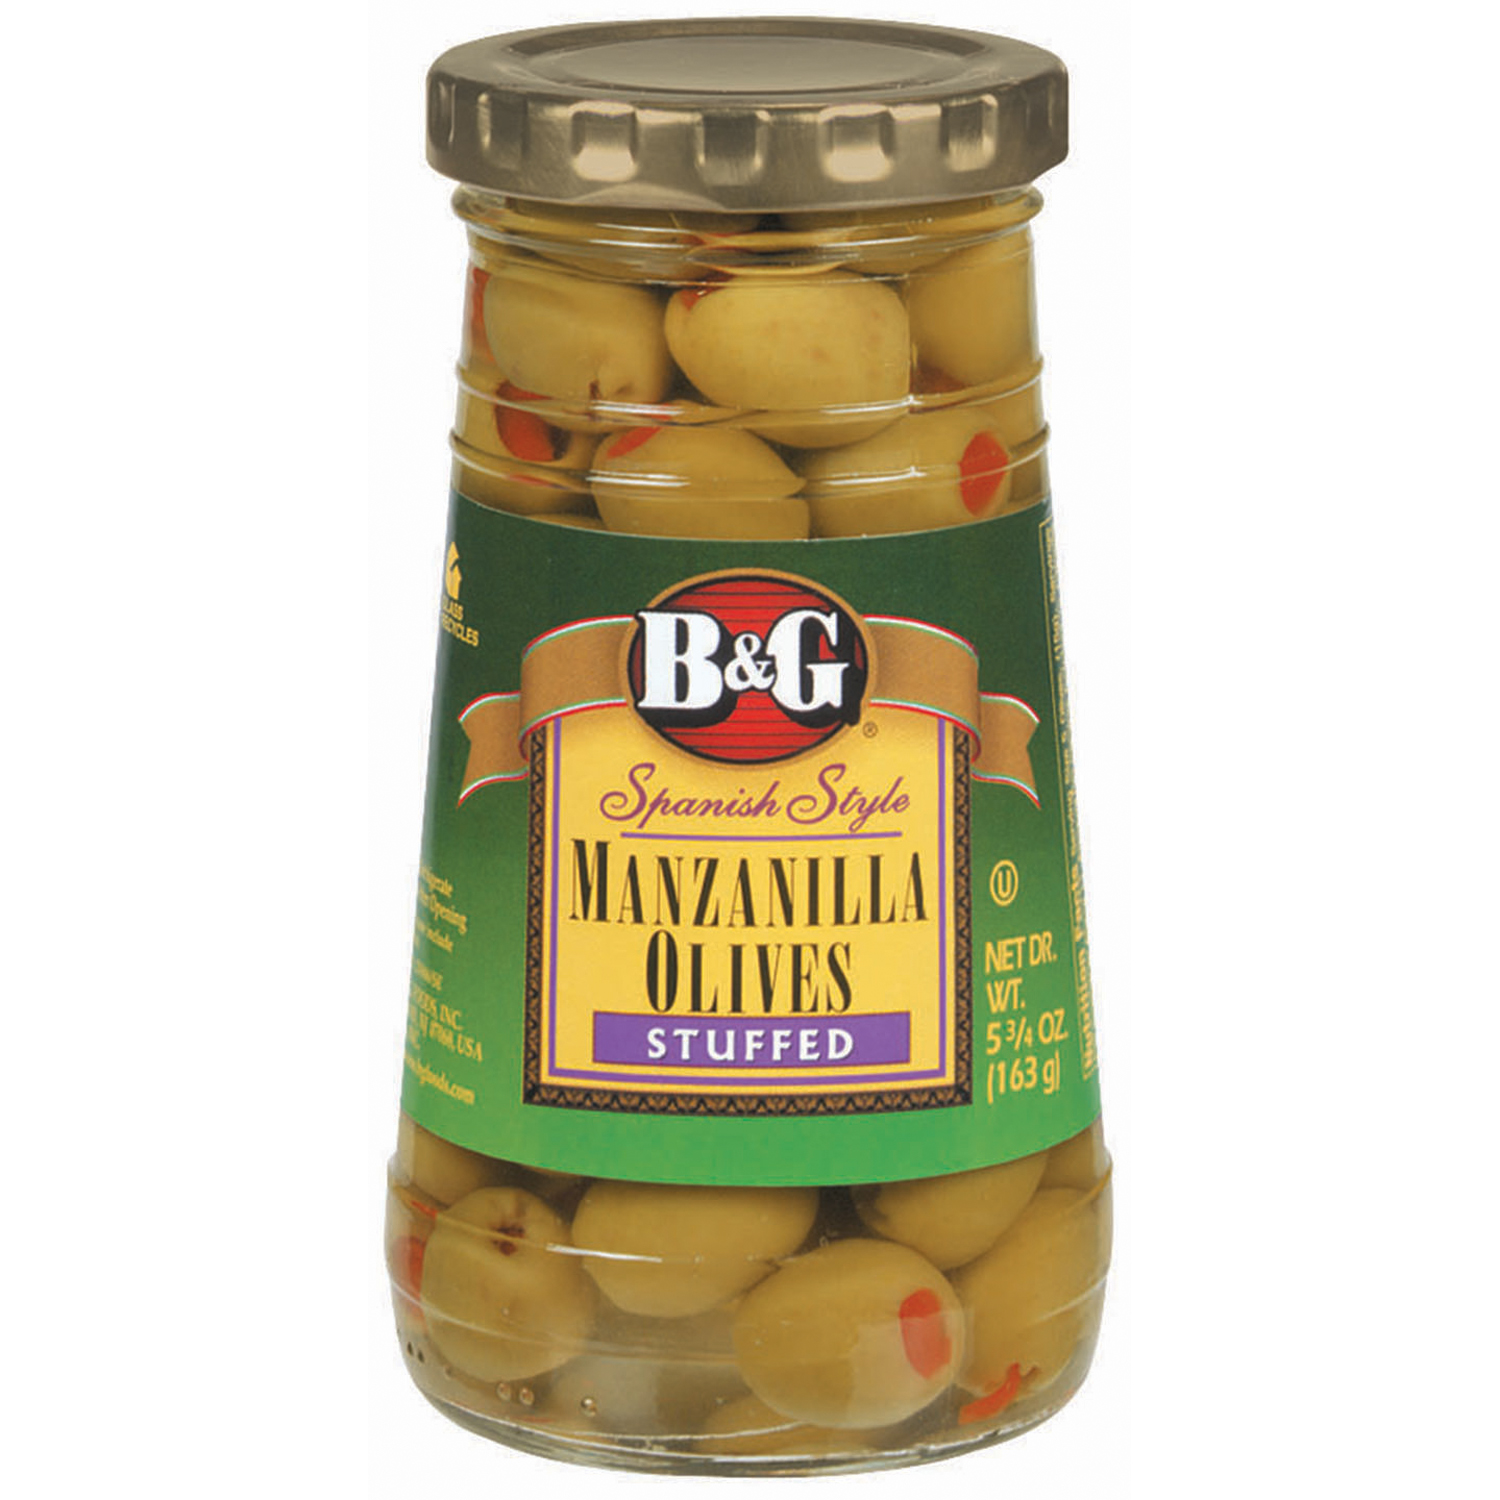 B&G Stuffed Manzanilla Olives, 5.75 Oz by B&G